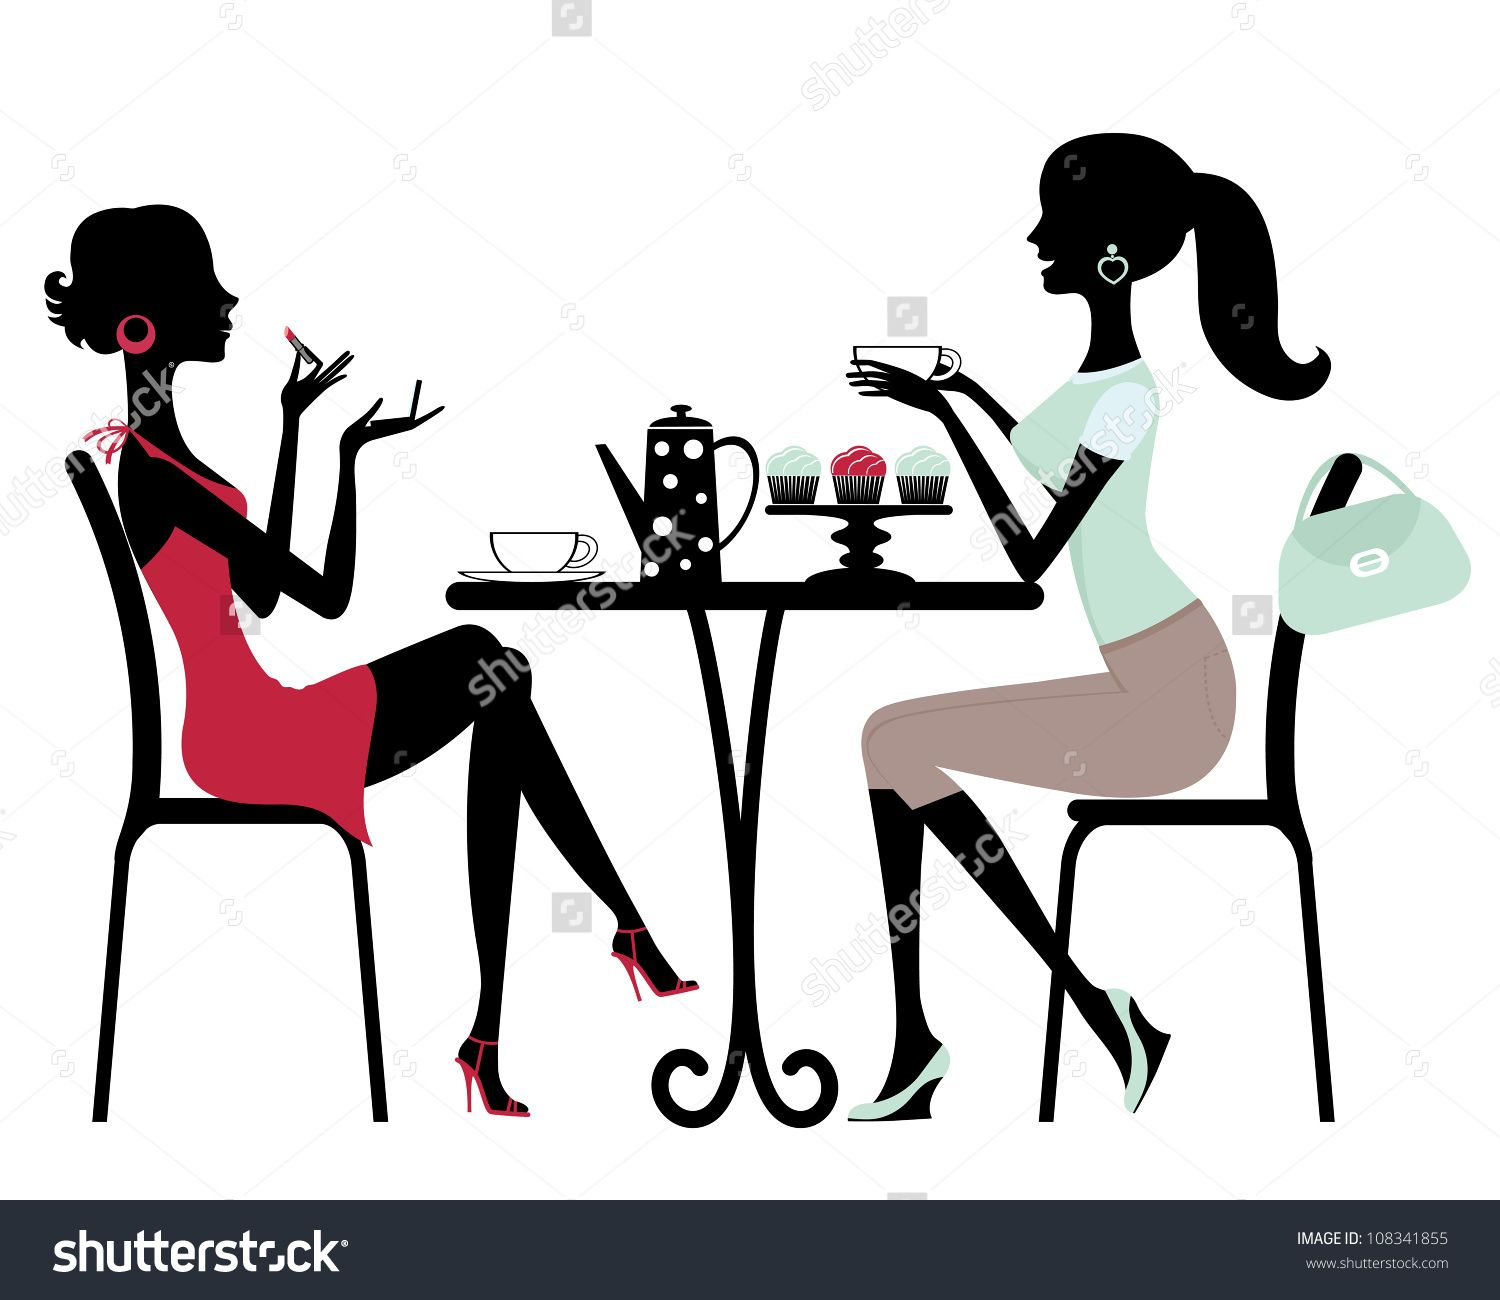 Acting clipart silhouette. Two beautiful women sitting